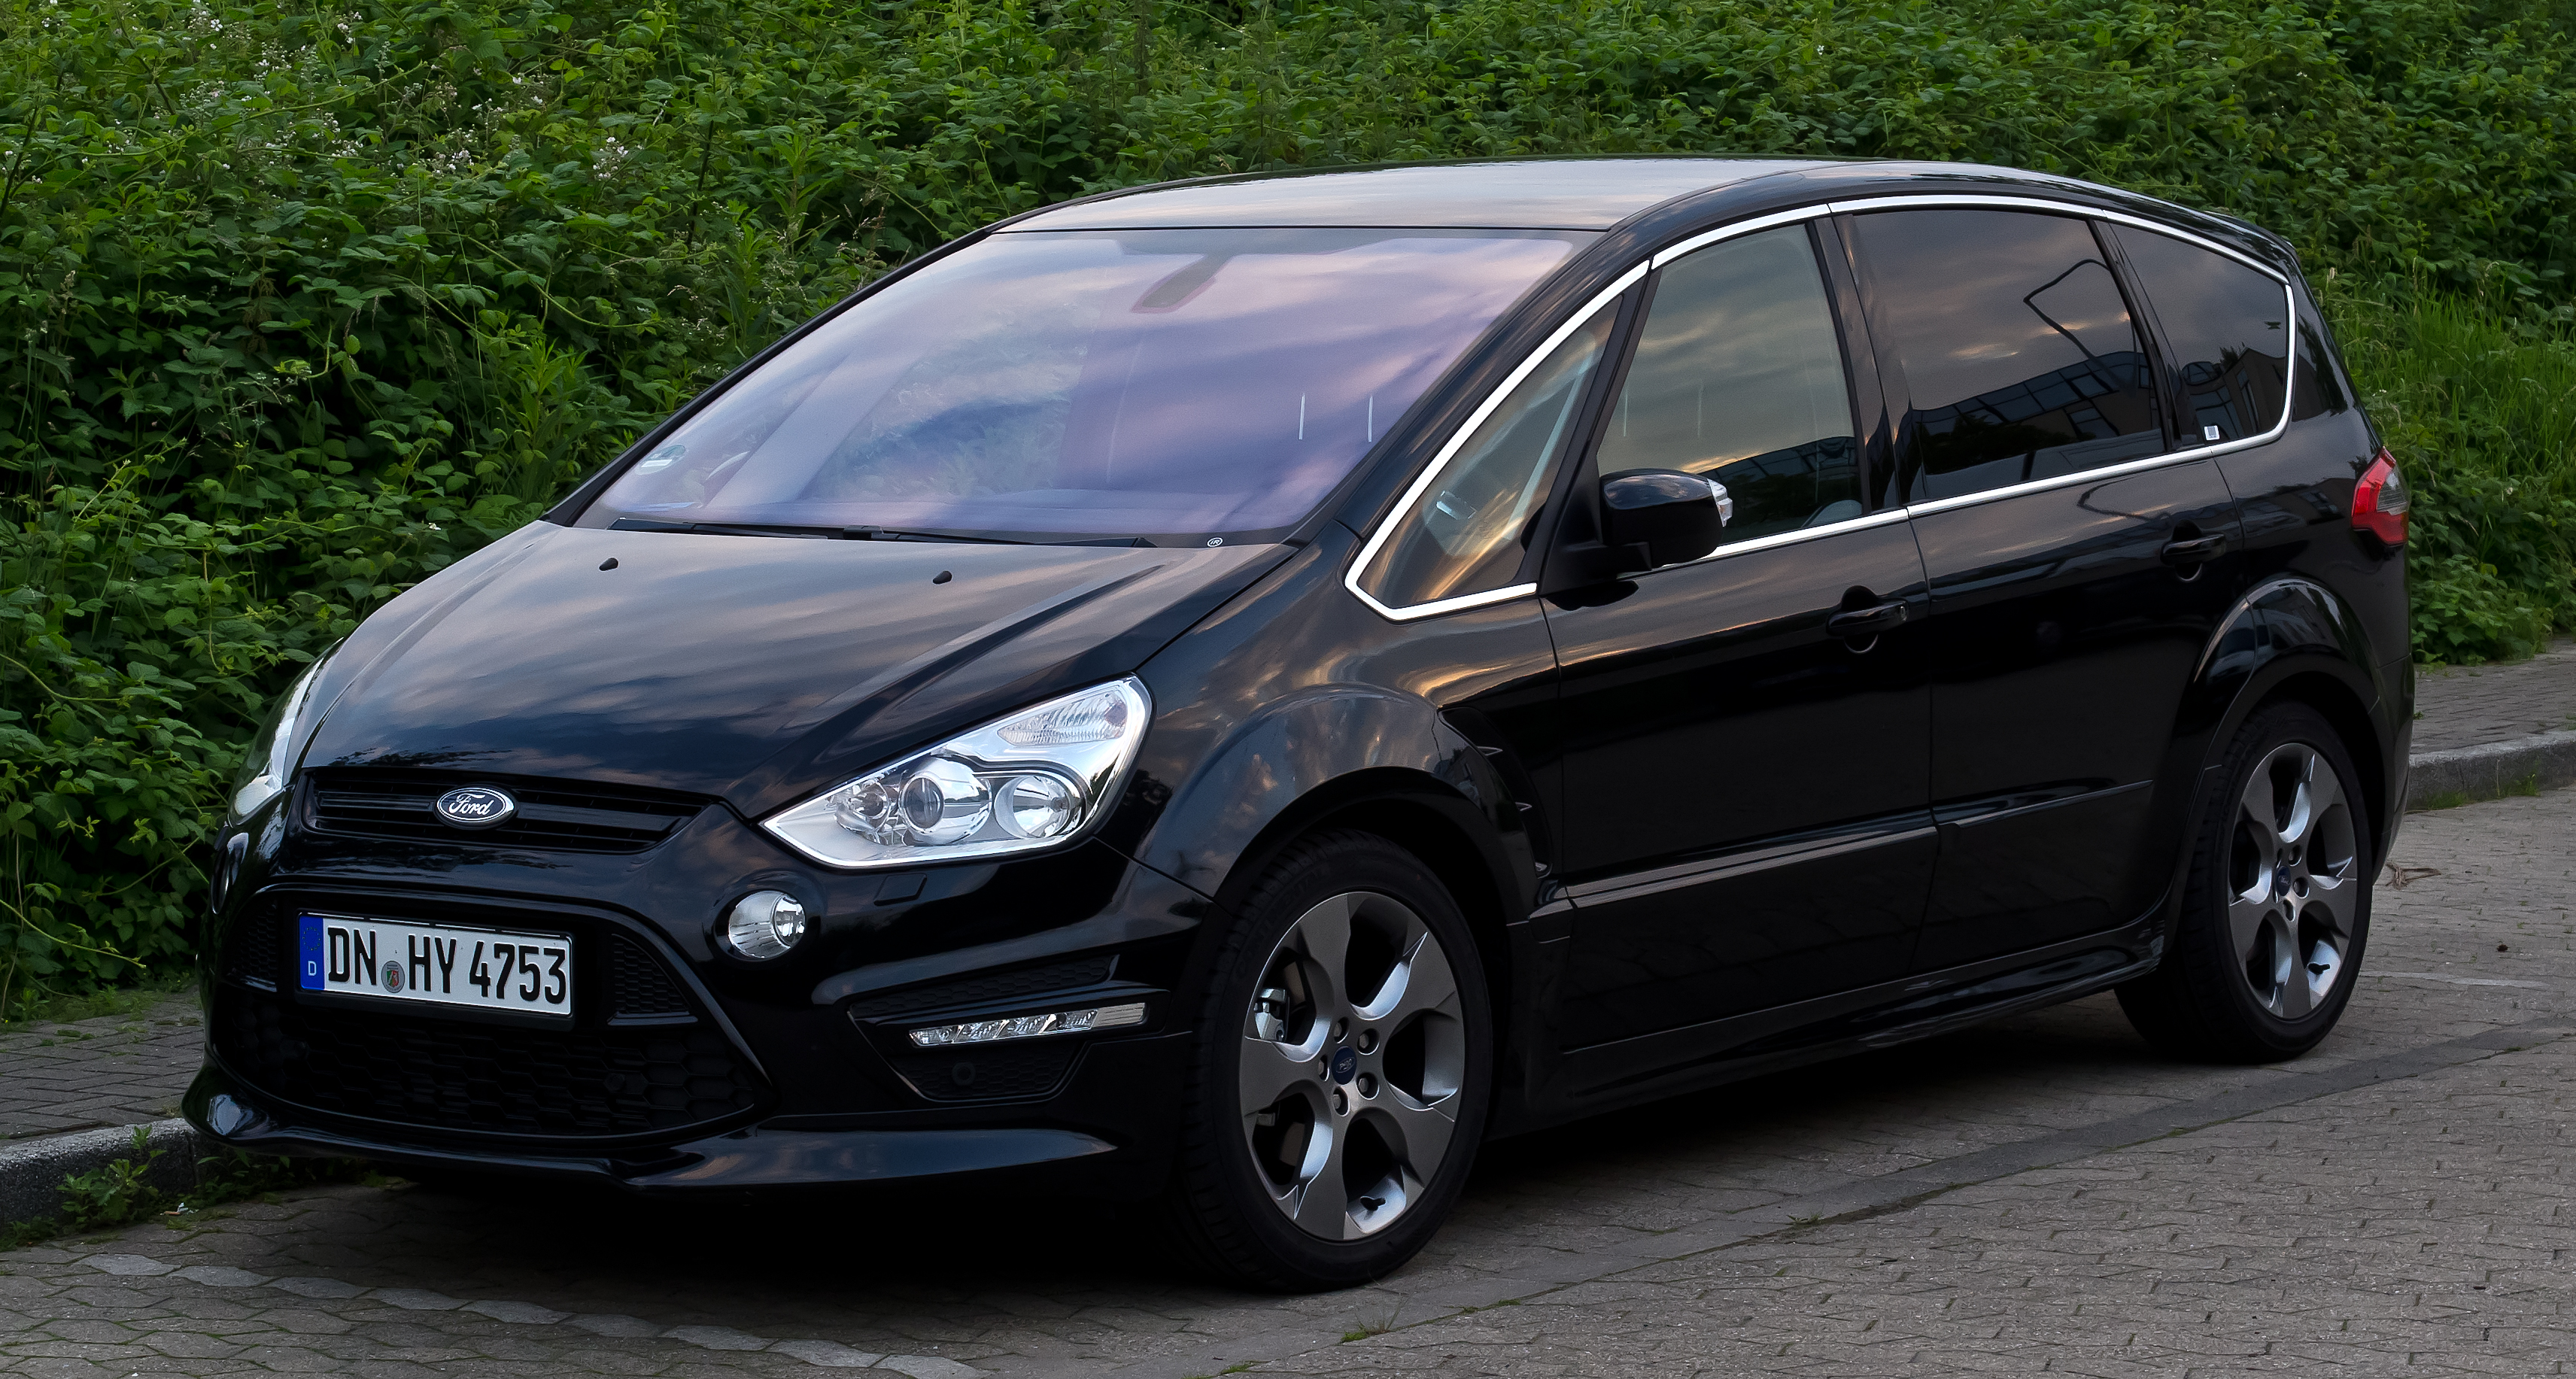 Ford S-Max 2.2 2007 photo - 5